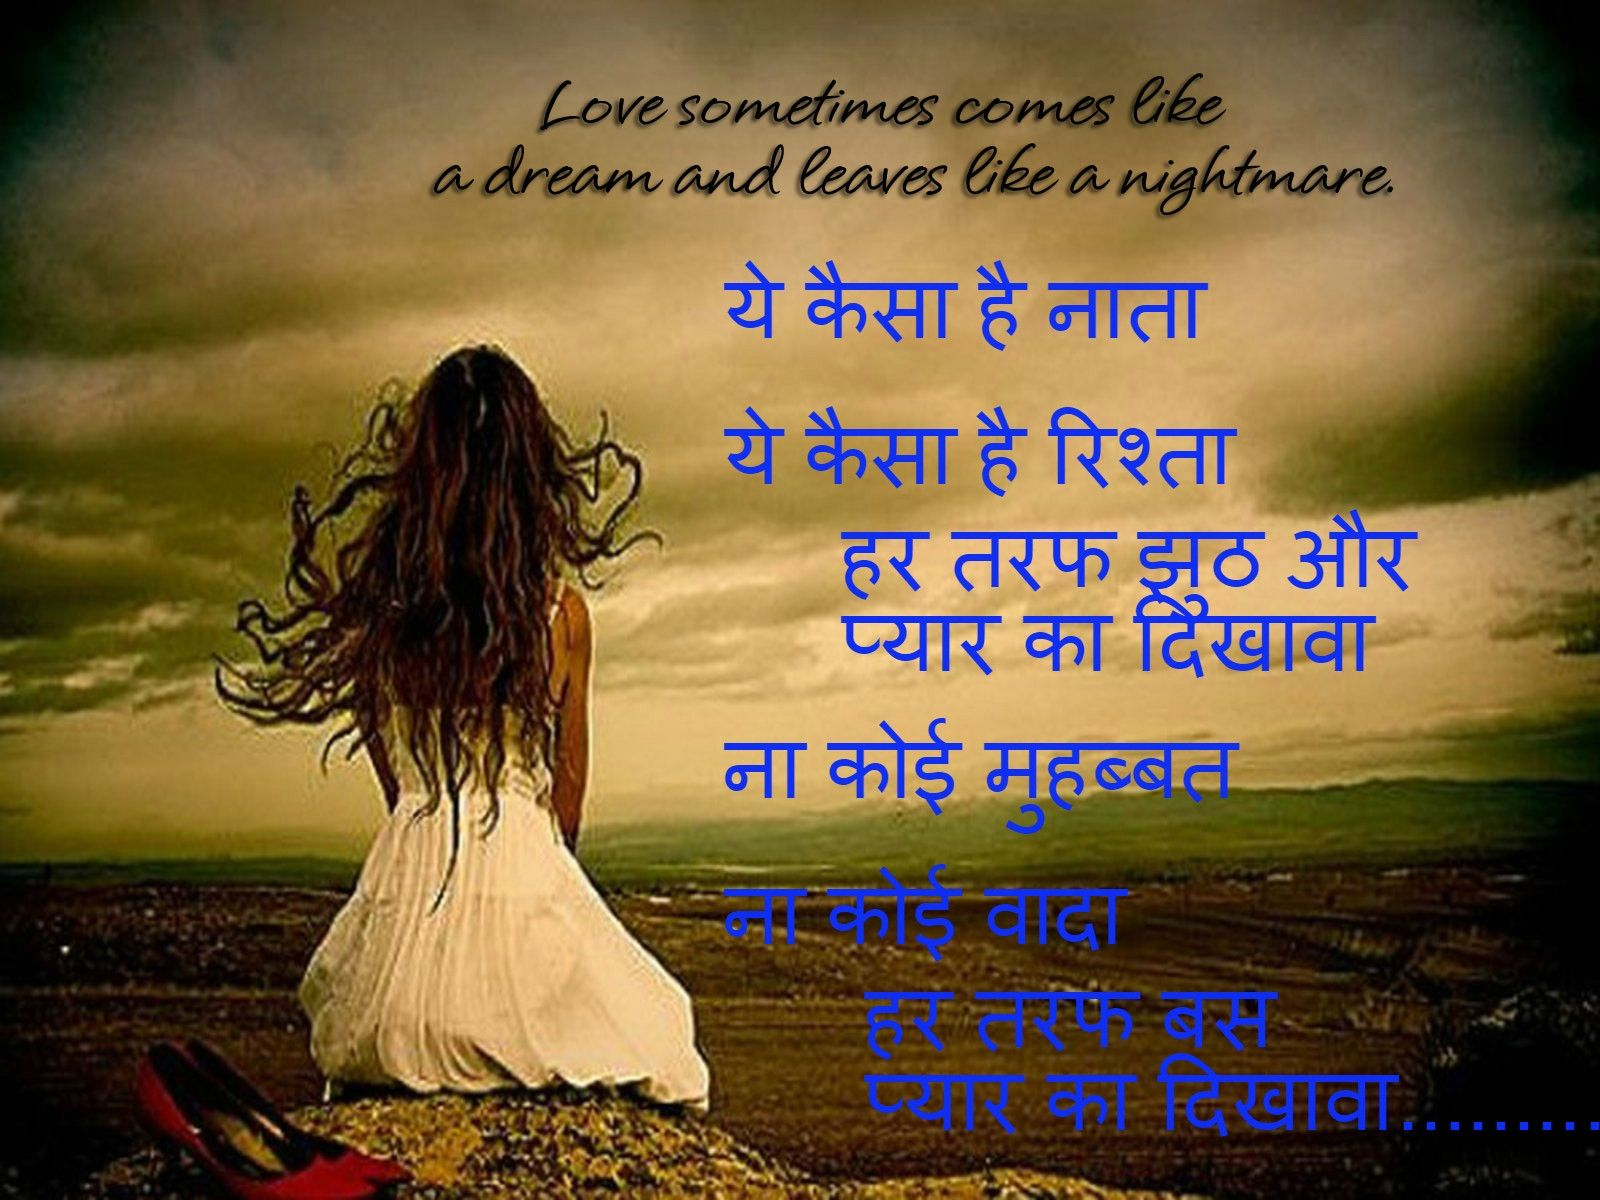 Hindi love shayari hd wallpaper download kid wallpaper - Best love shayari wallpaper ...